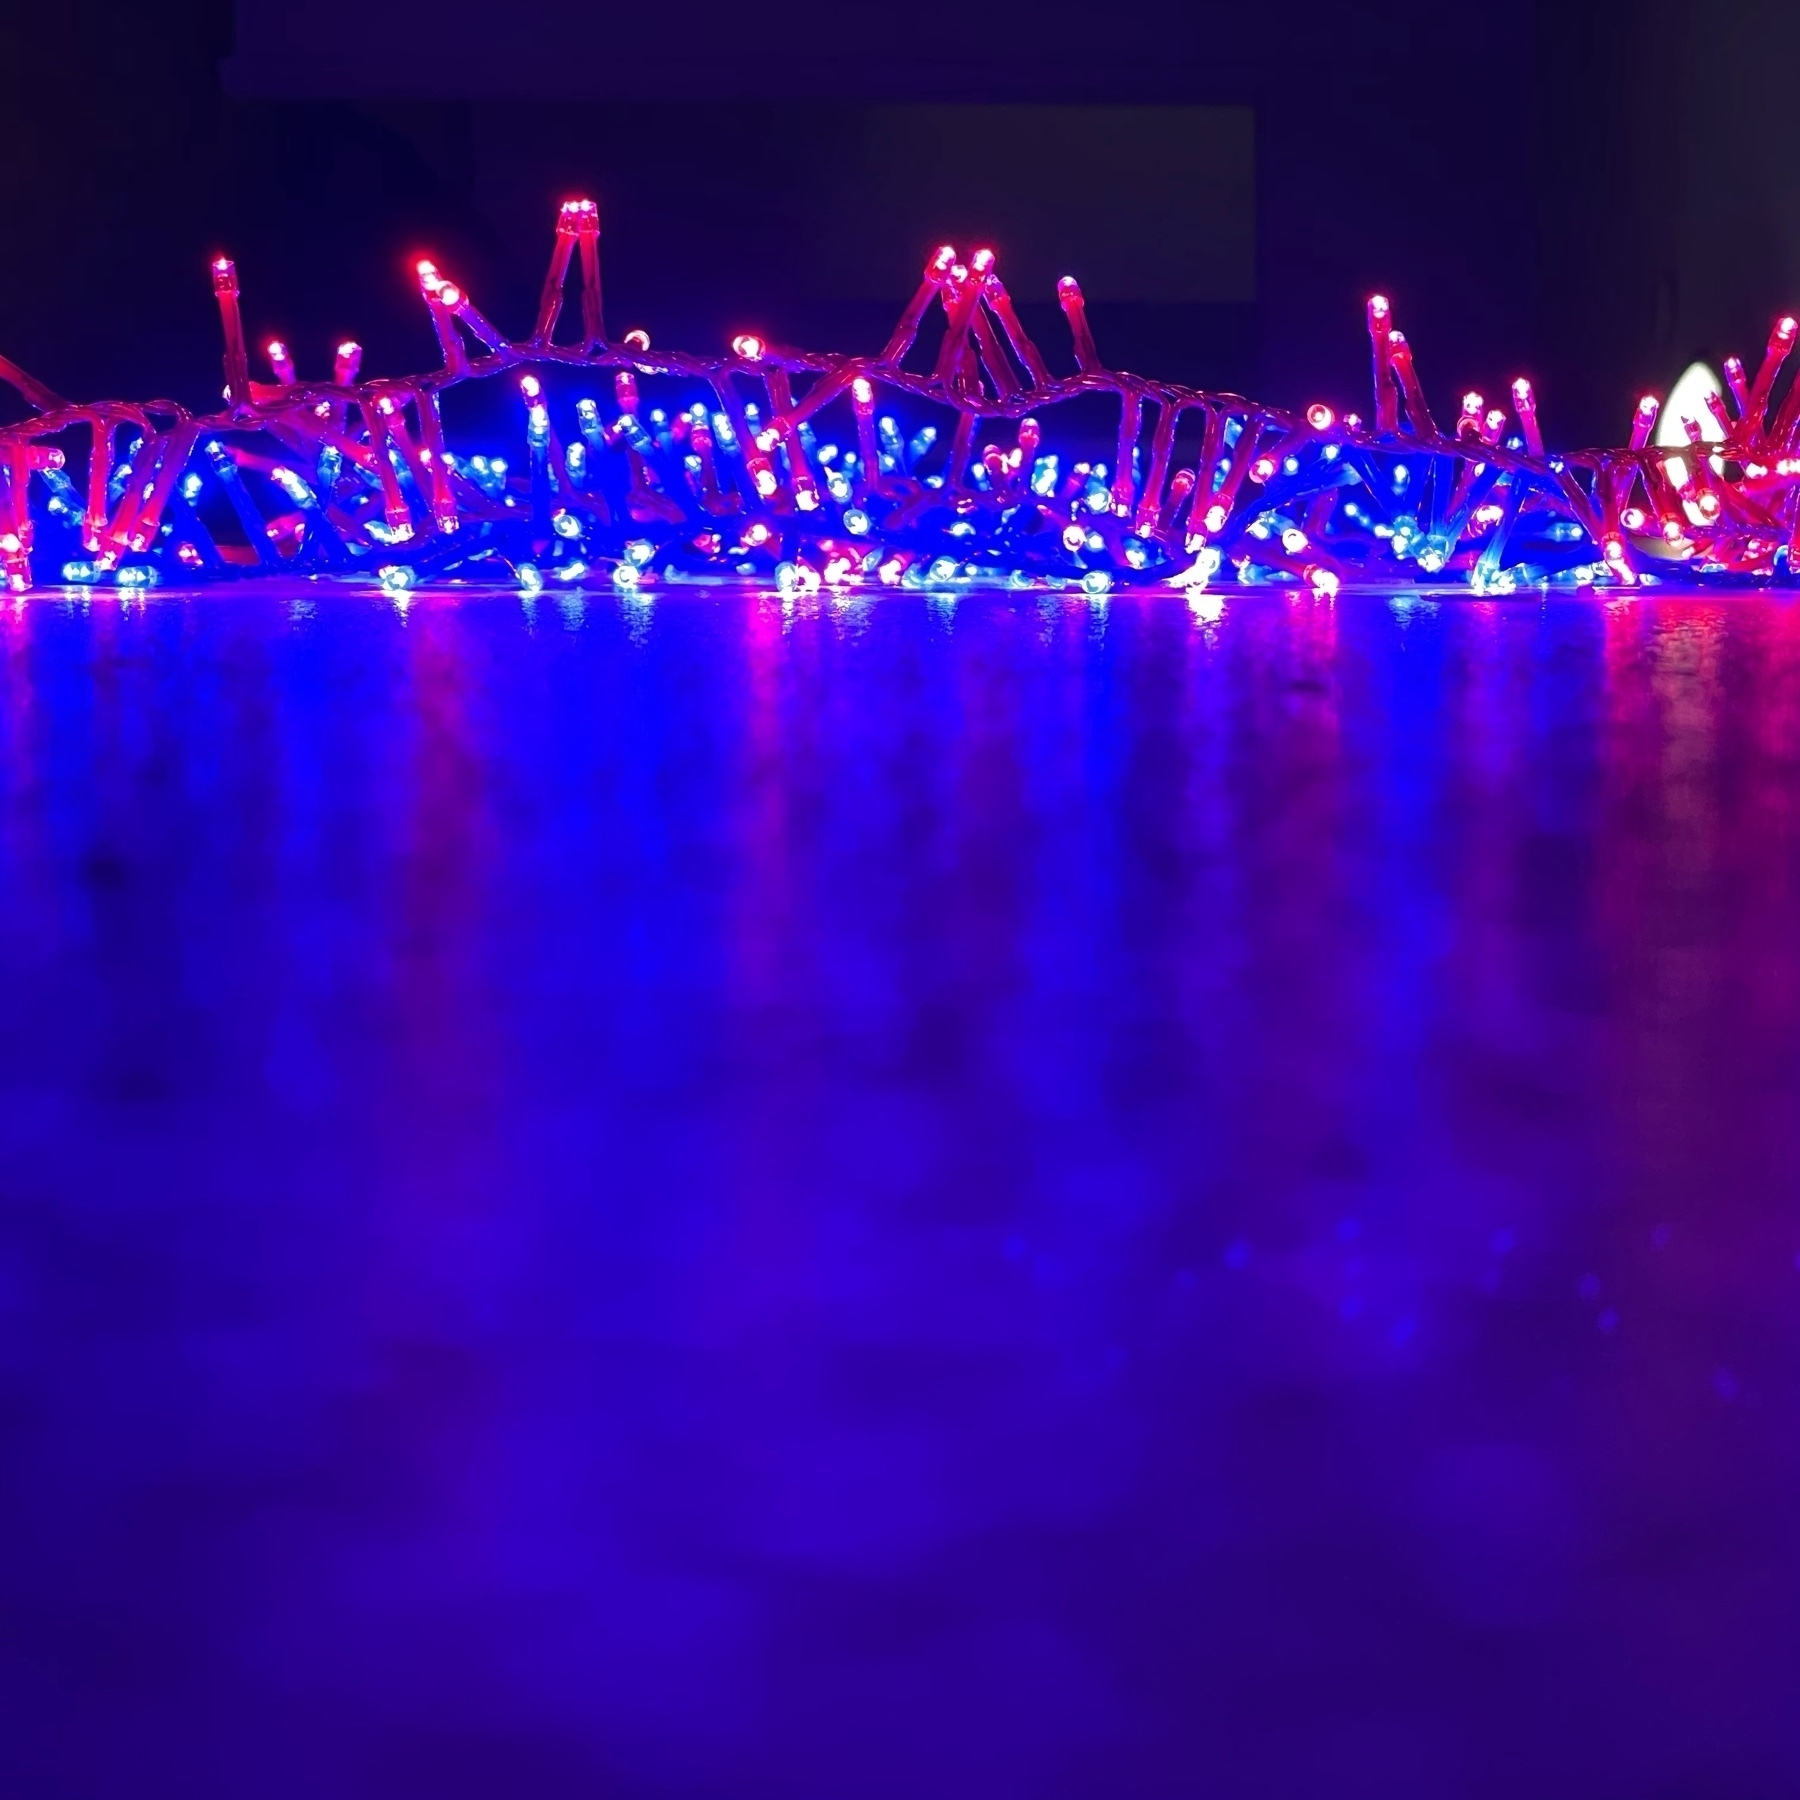 blue and red led light close up